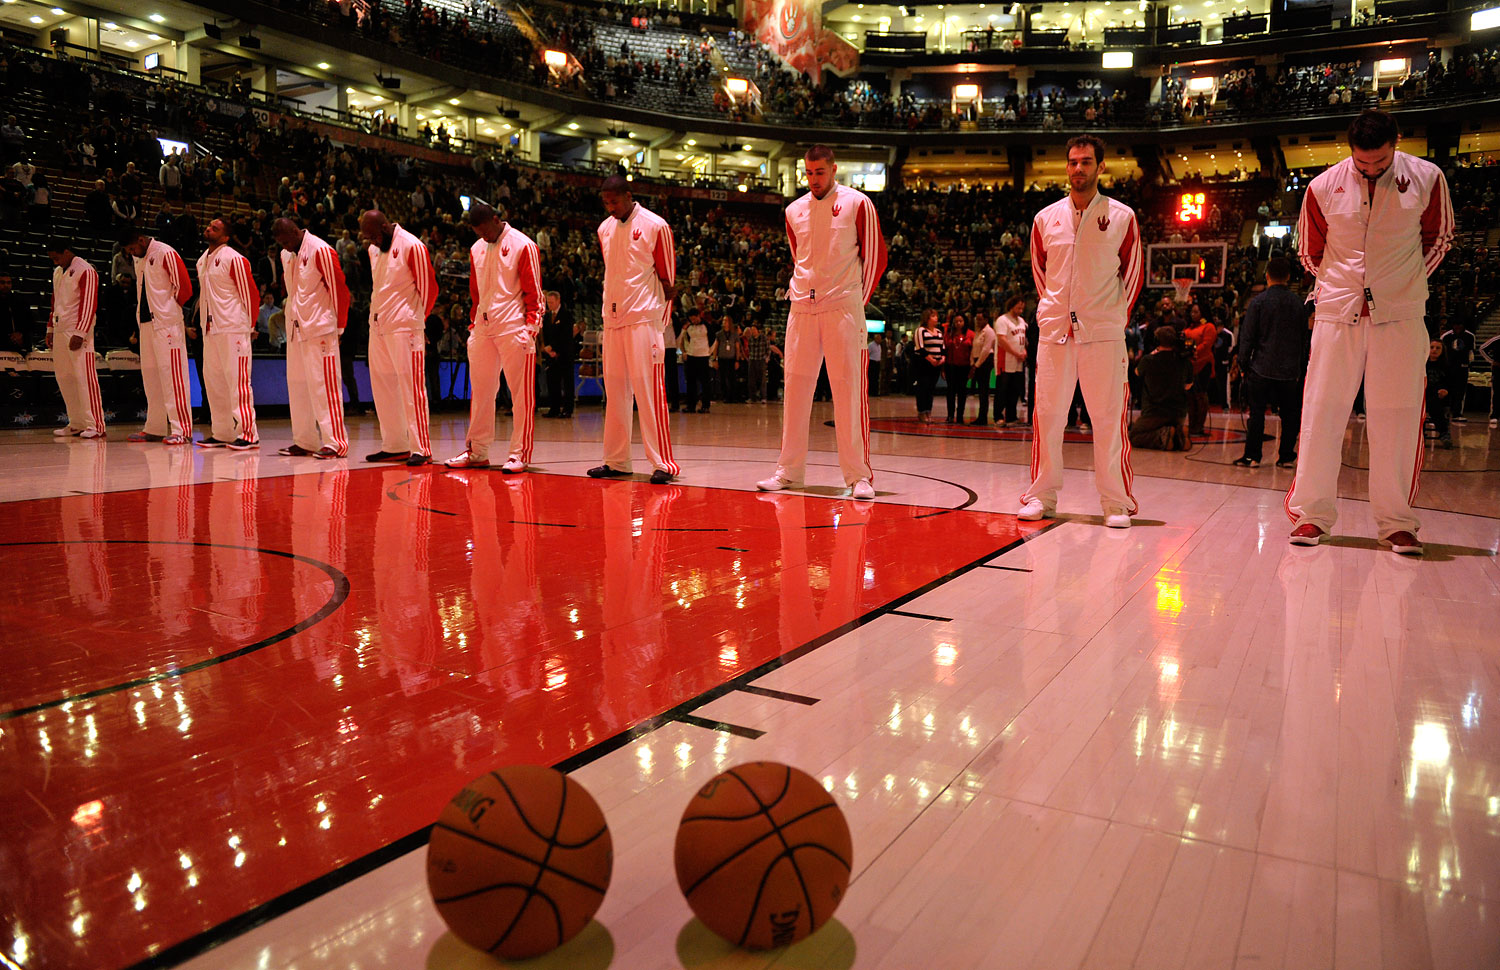 image: Members of the Toronto Raptors observe a moment of silence in remembrance of the shooting victims at Sandy Hook Elementary School in Newtown Connecticut before their NBA basketball game in Toronto